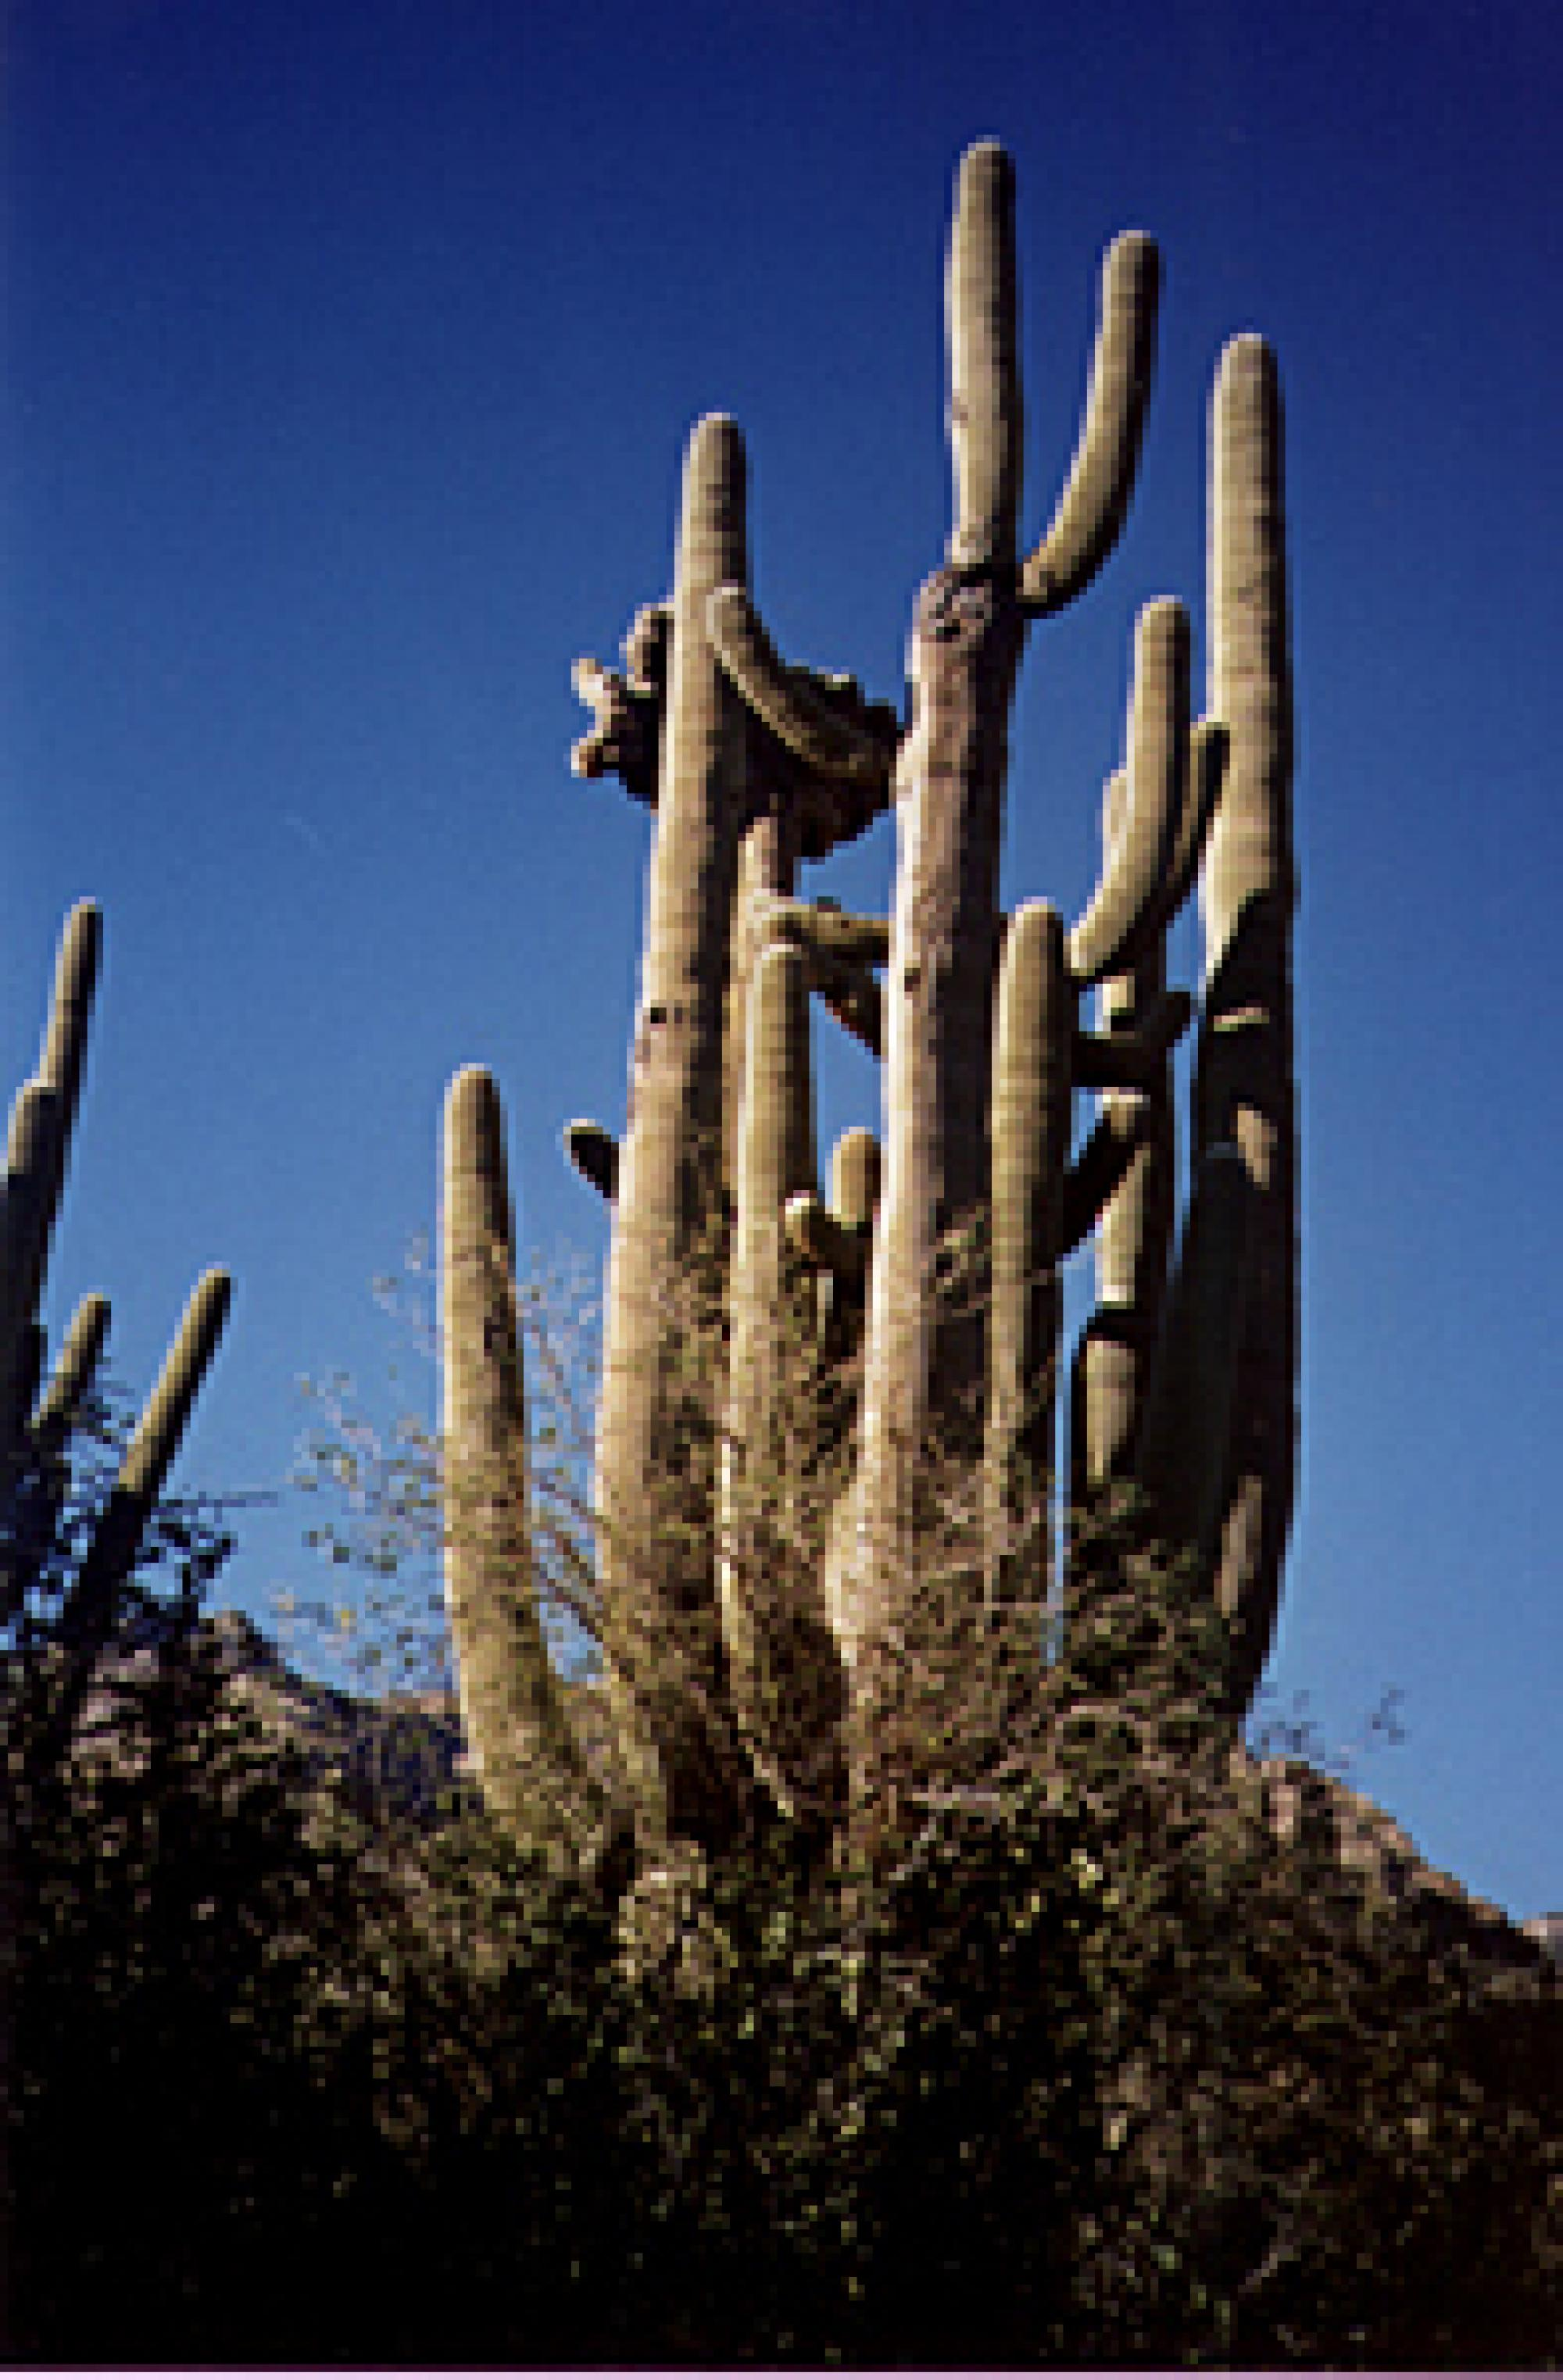 A couple of old soldiers of the desert, near the end of Ventana Canyon trail.  These cacti started growing when Tucson was still just a tiny village clustered around the Santa Cruz River.